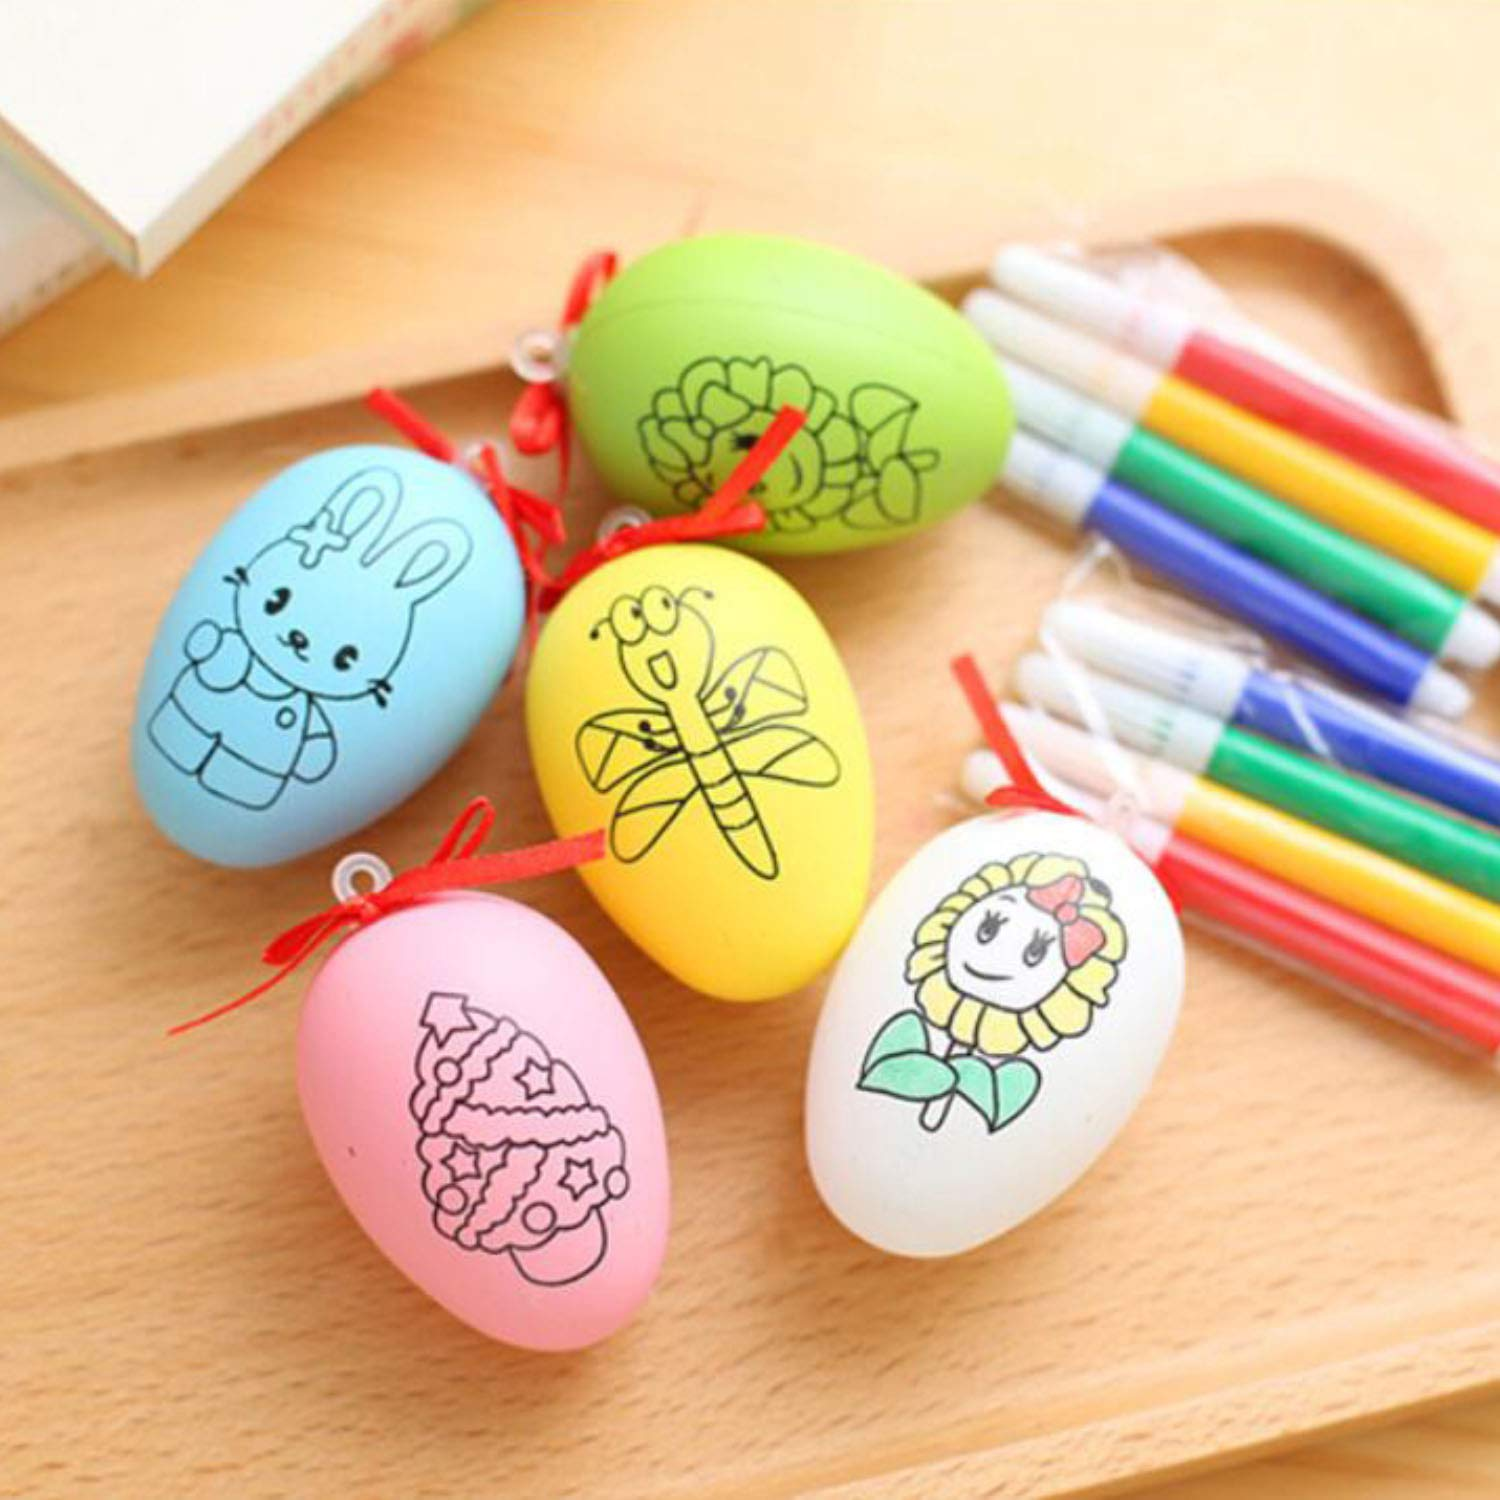 Easter Eggs Popmall 6 pcs Plastic Easter Eggs DIY Easter Eggs Plastic Eggs Artificial Egg DIY Decor Egg toys Hanging Ornament with 8 Color Pens